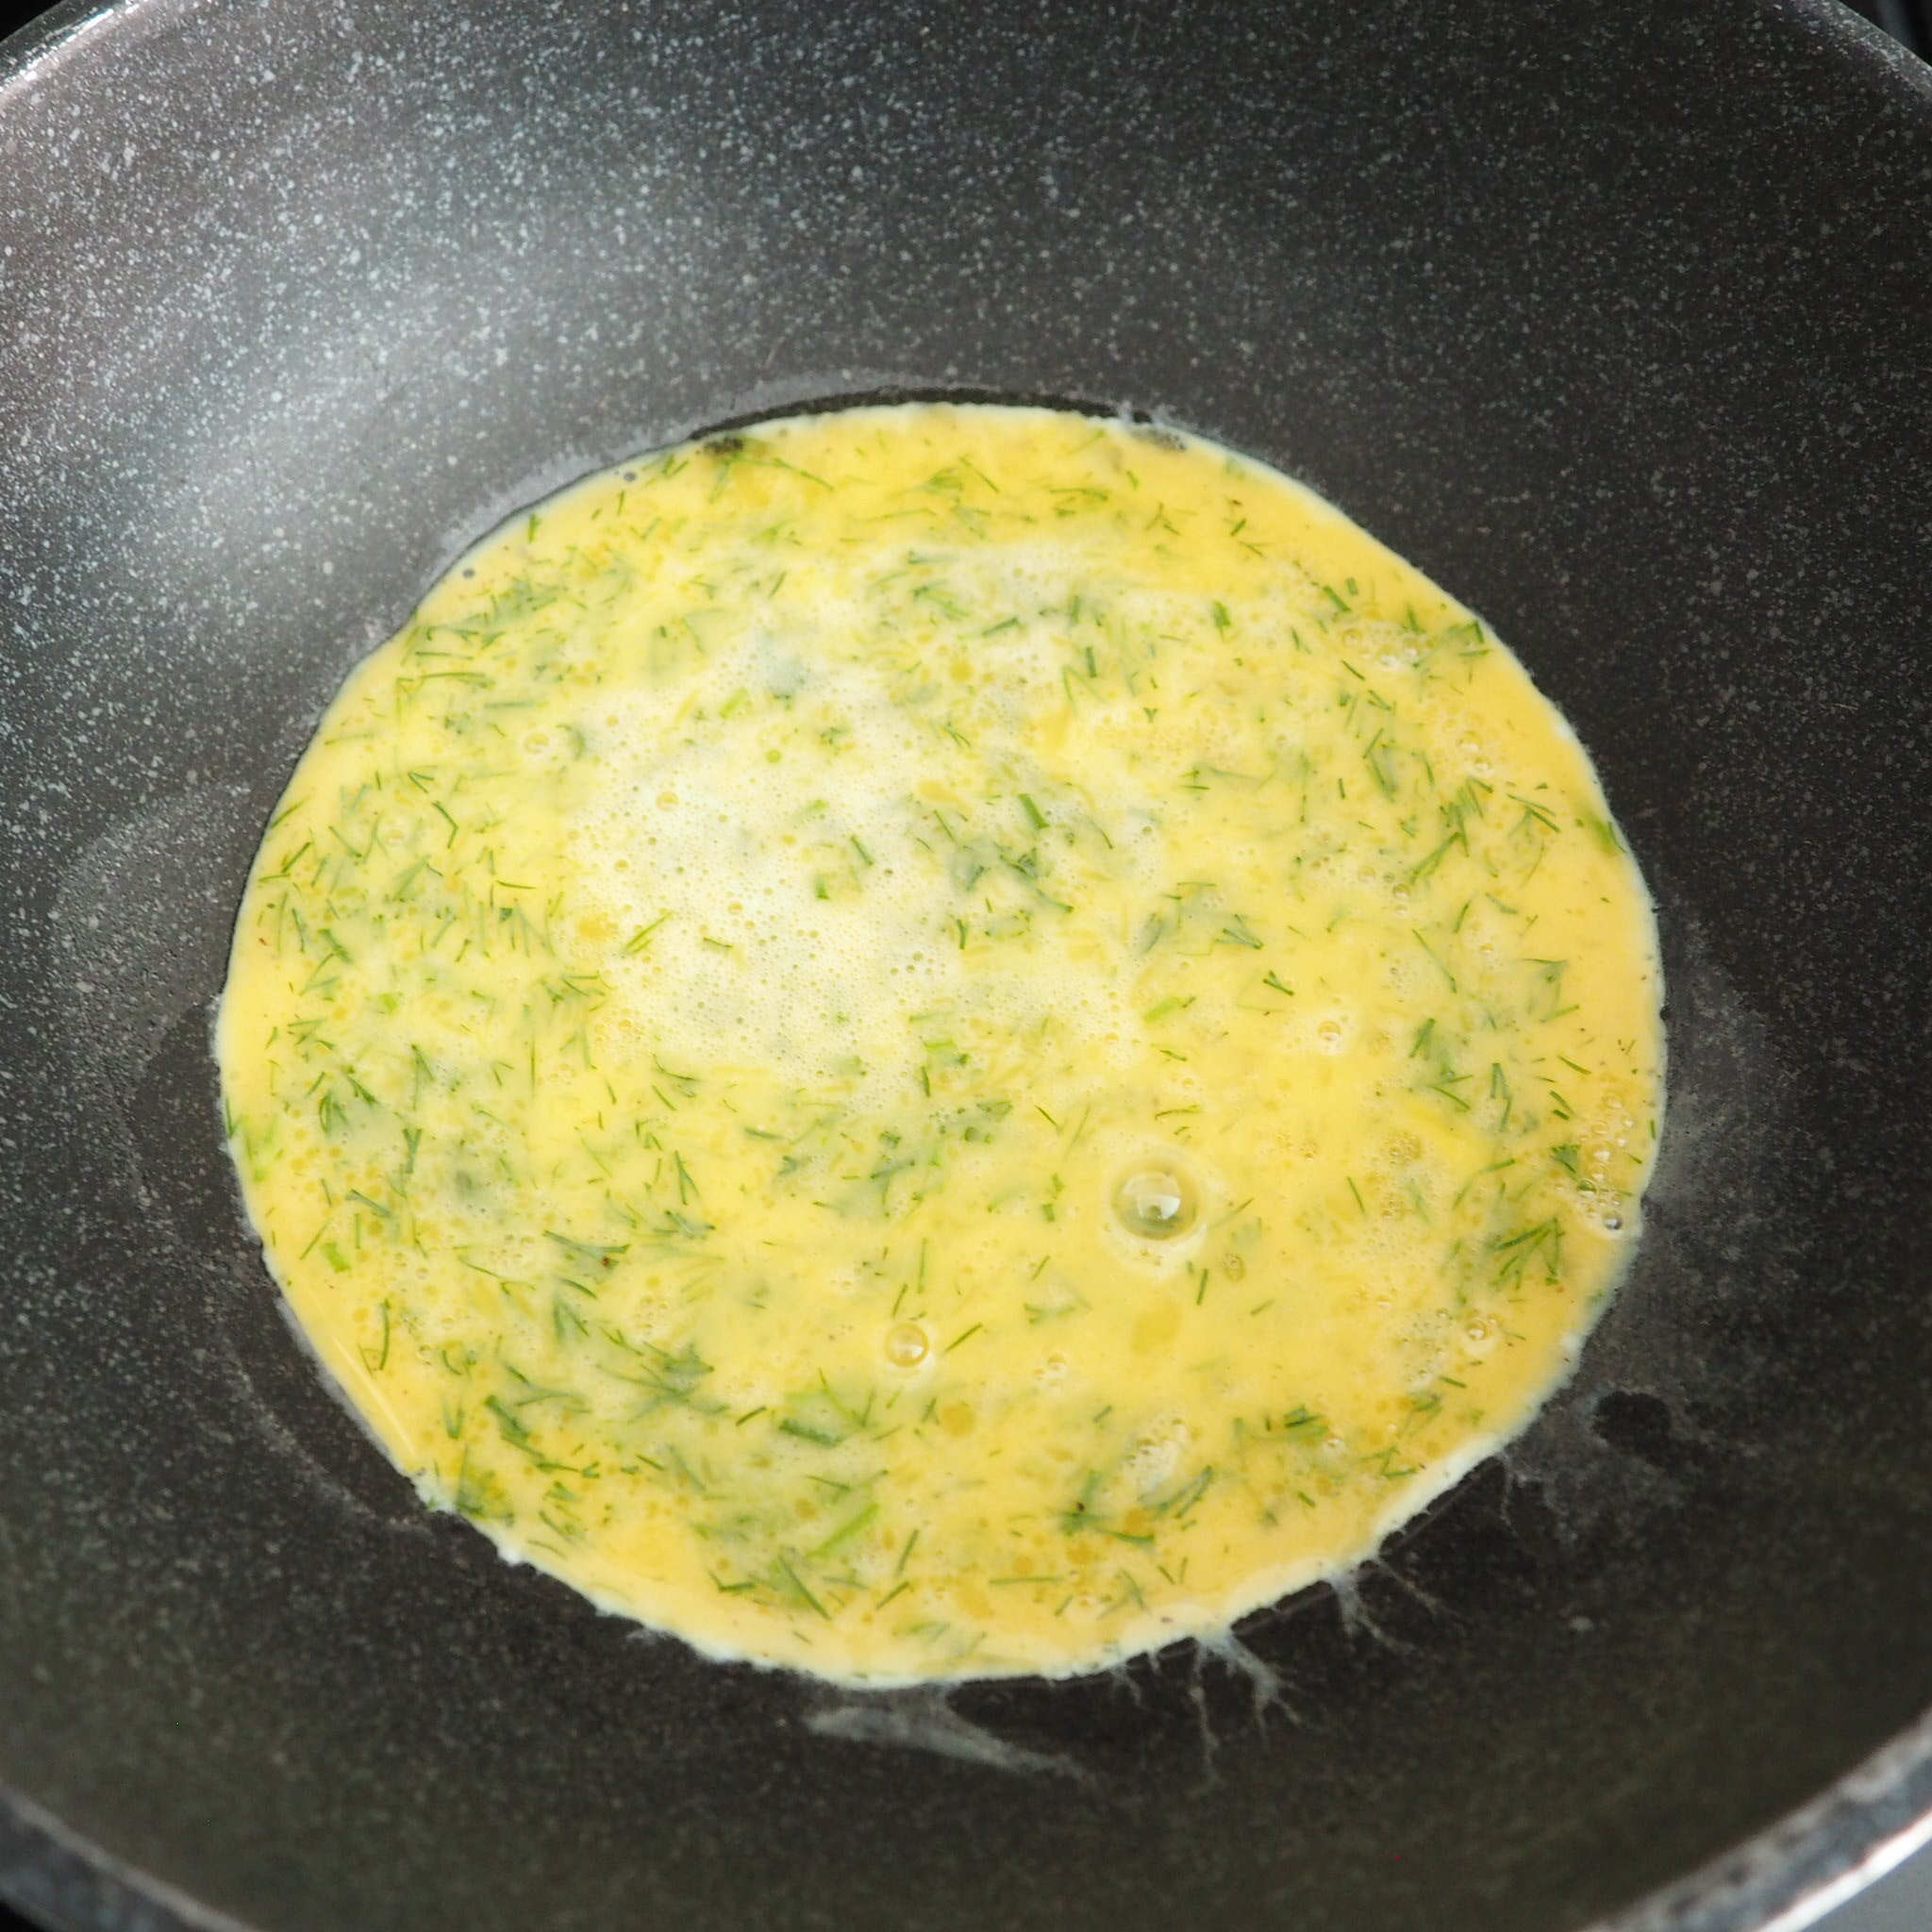 Step 3: On a pan set on medium heat, pour in your scrambled eggs